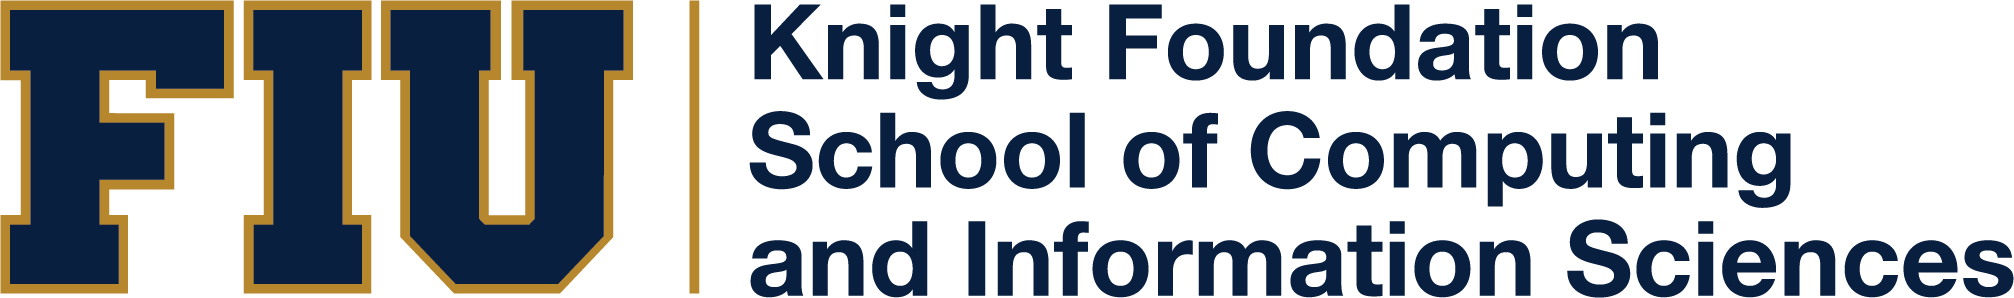 Knight Foundation School of Computing and Information Sciences logo